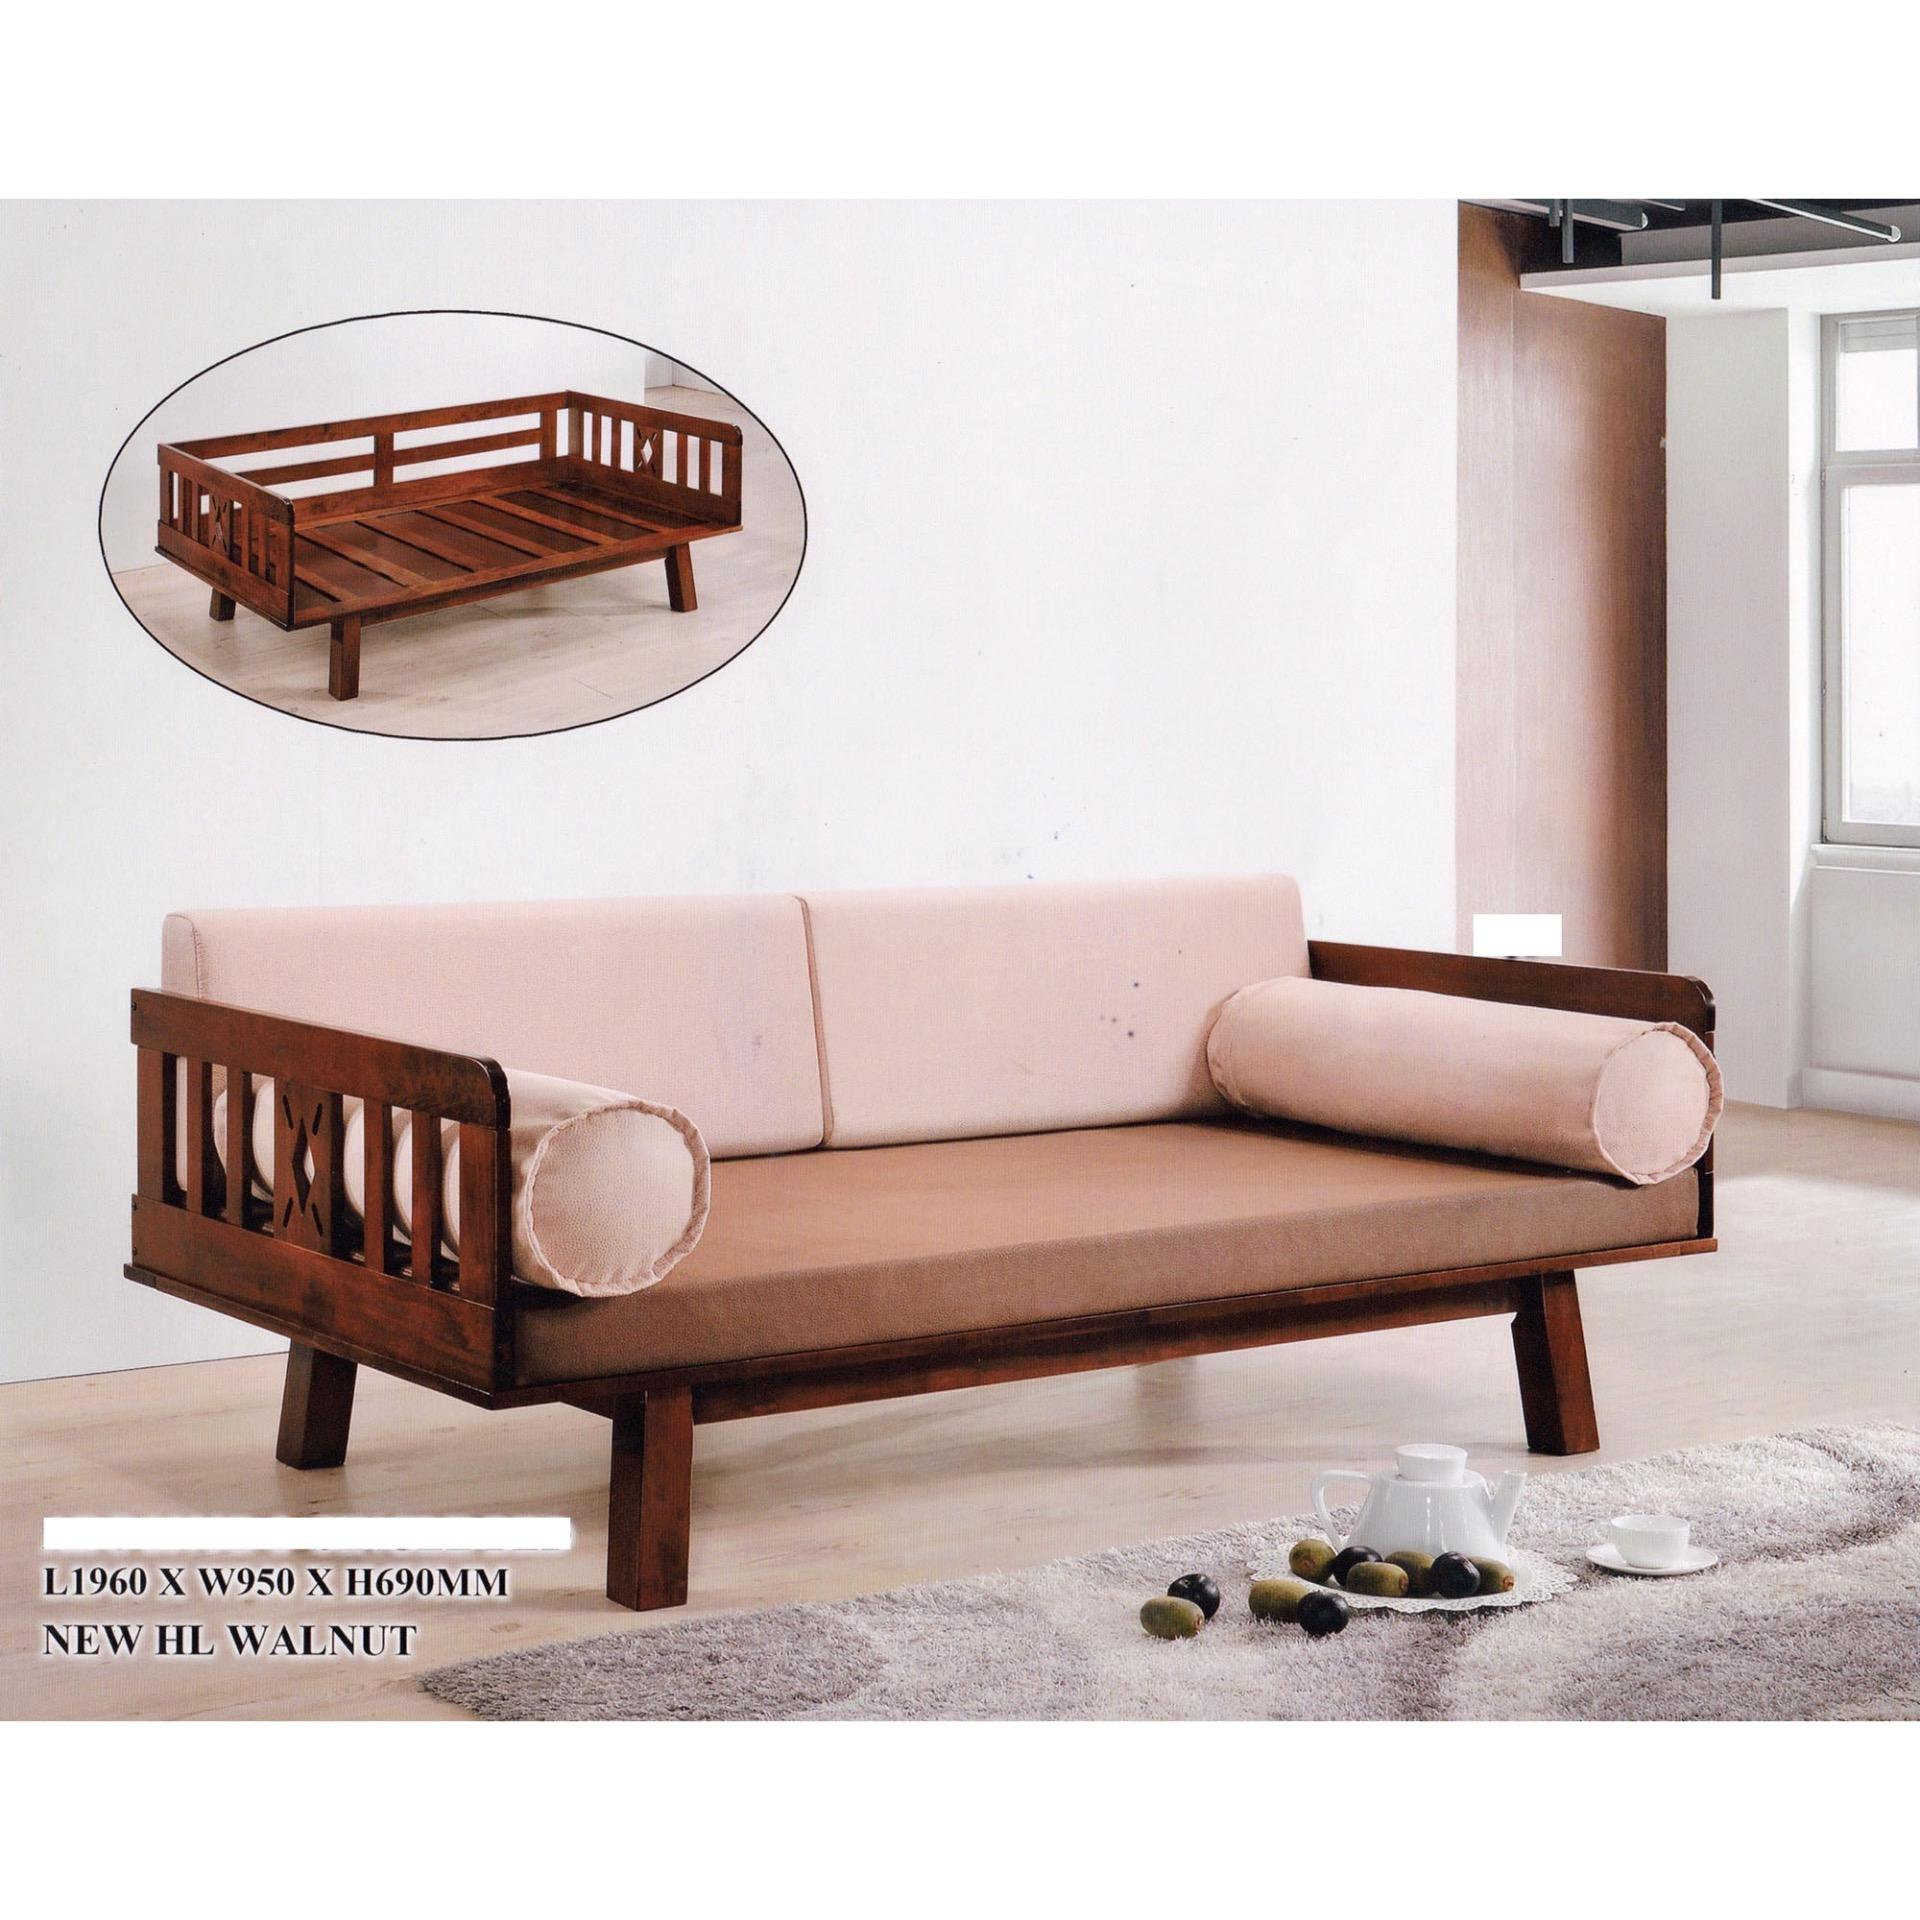 Solid Wood Fabric Sofa Bed Lounge Chair Bed Day Bed Cream Colour